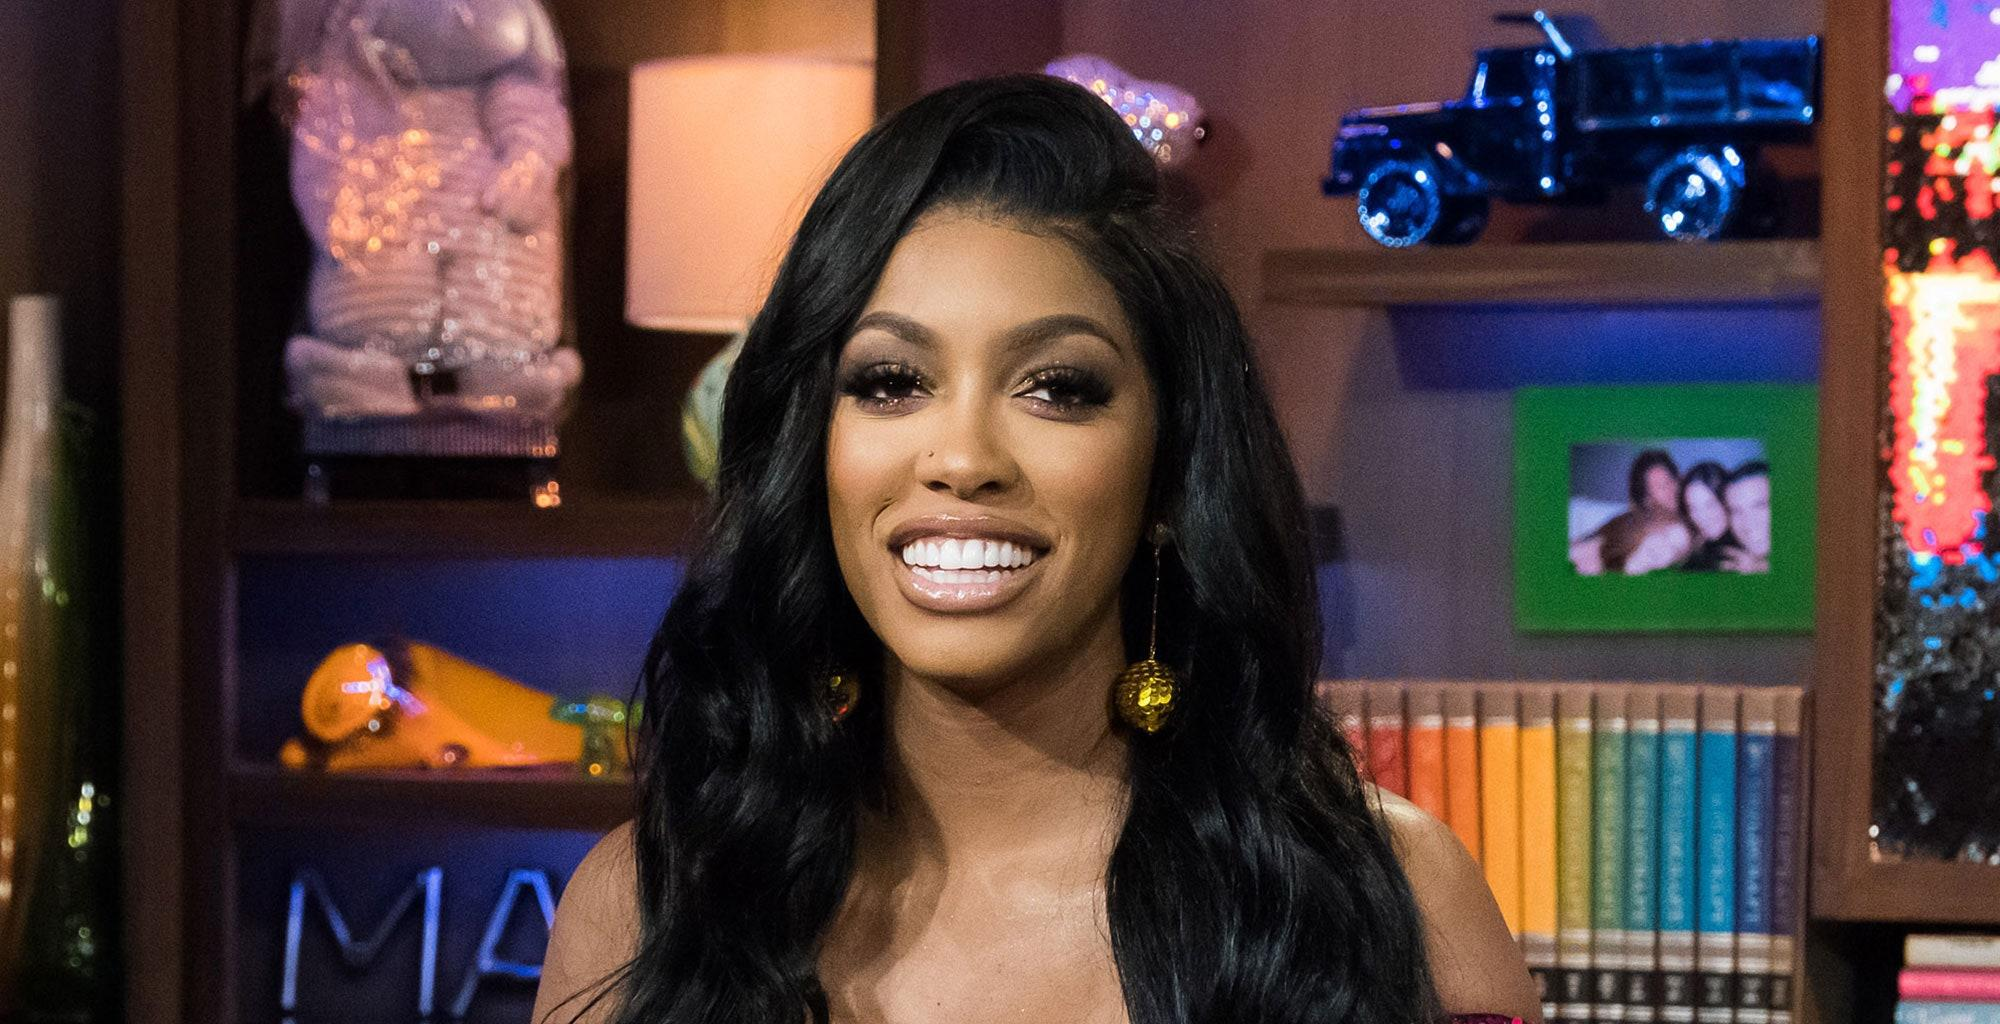 Porsha Williams Shares The Most Exciting Announcement - Check It Out Here